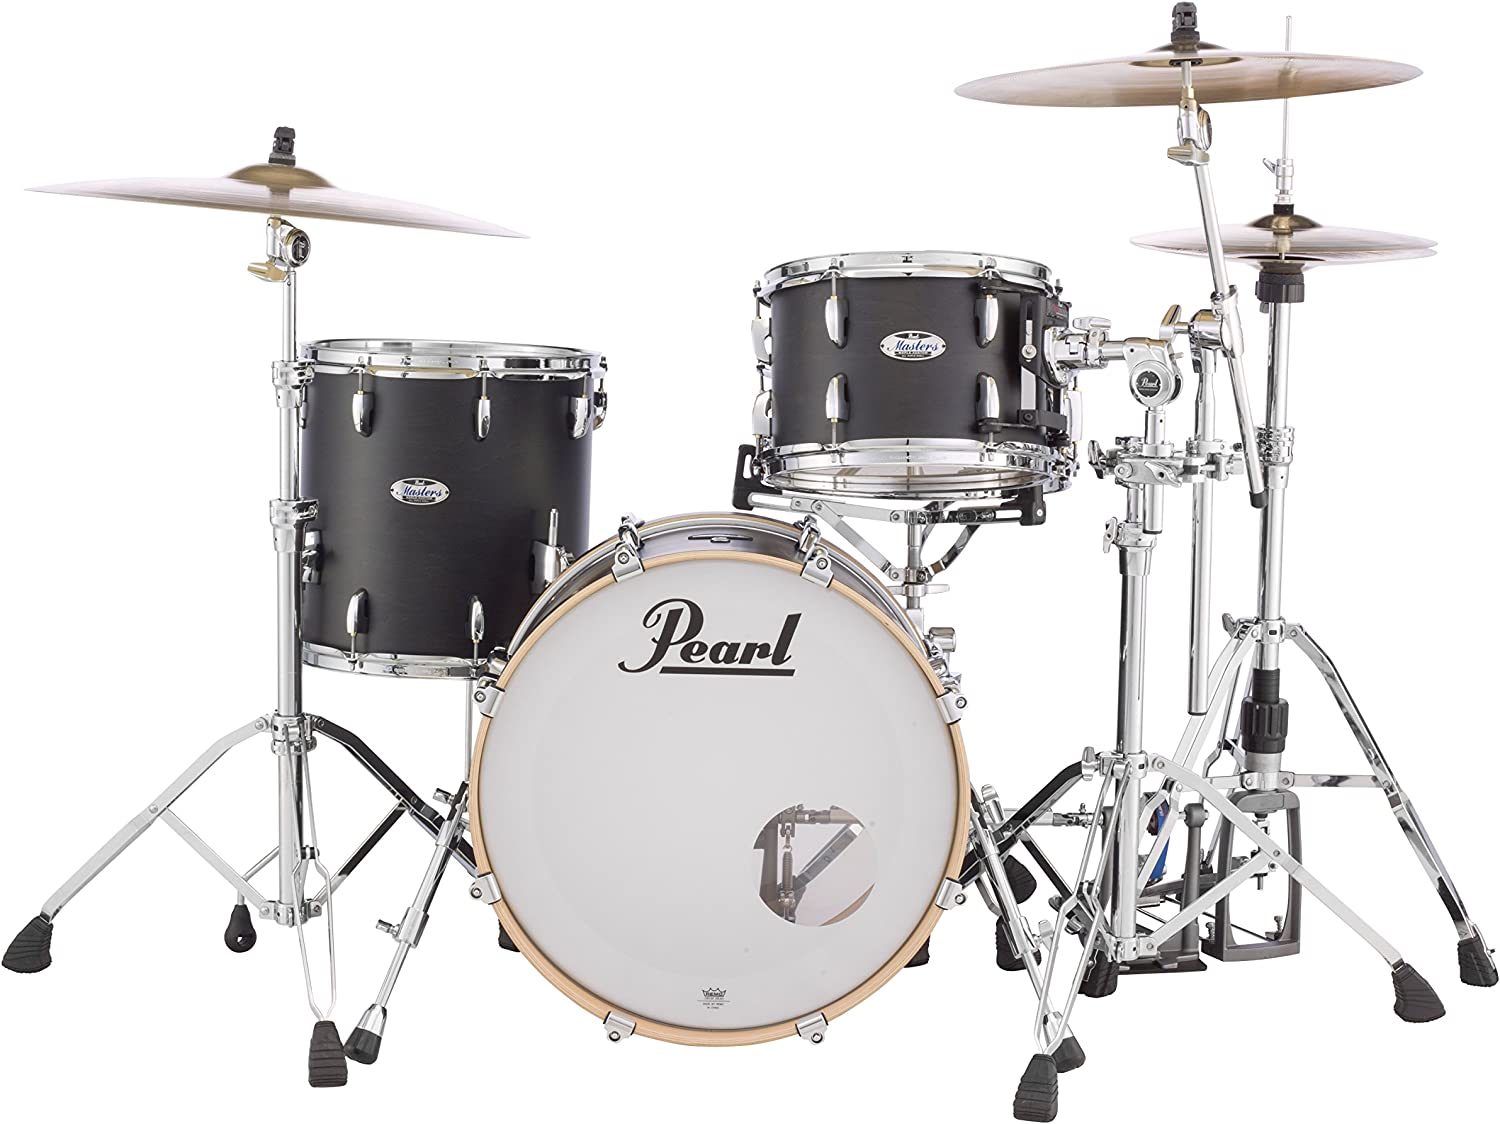 Pearl Masters Maple Complete MCT903XP/C124 3 Piece Drum Shell Pack, Black Mist